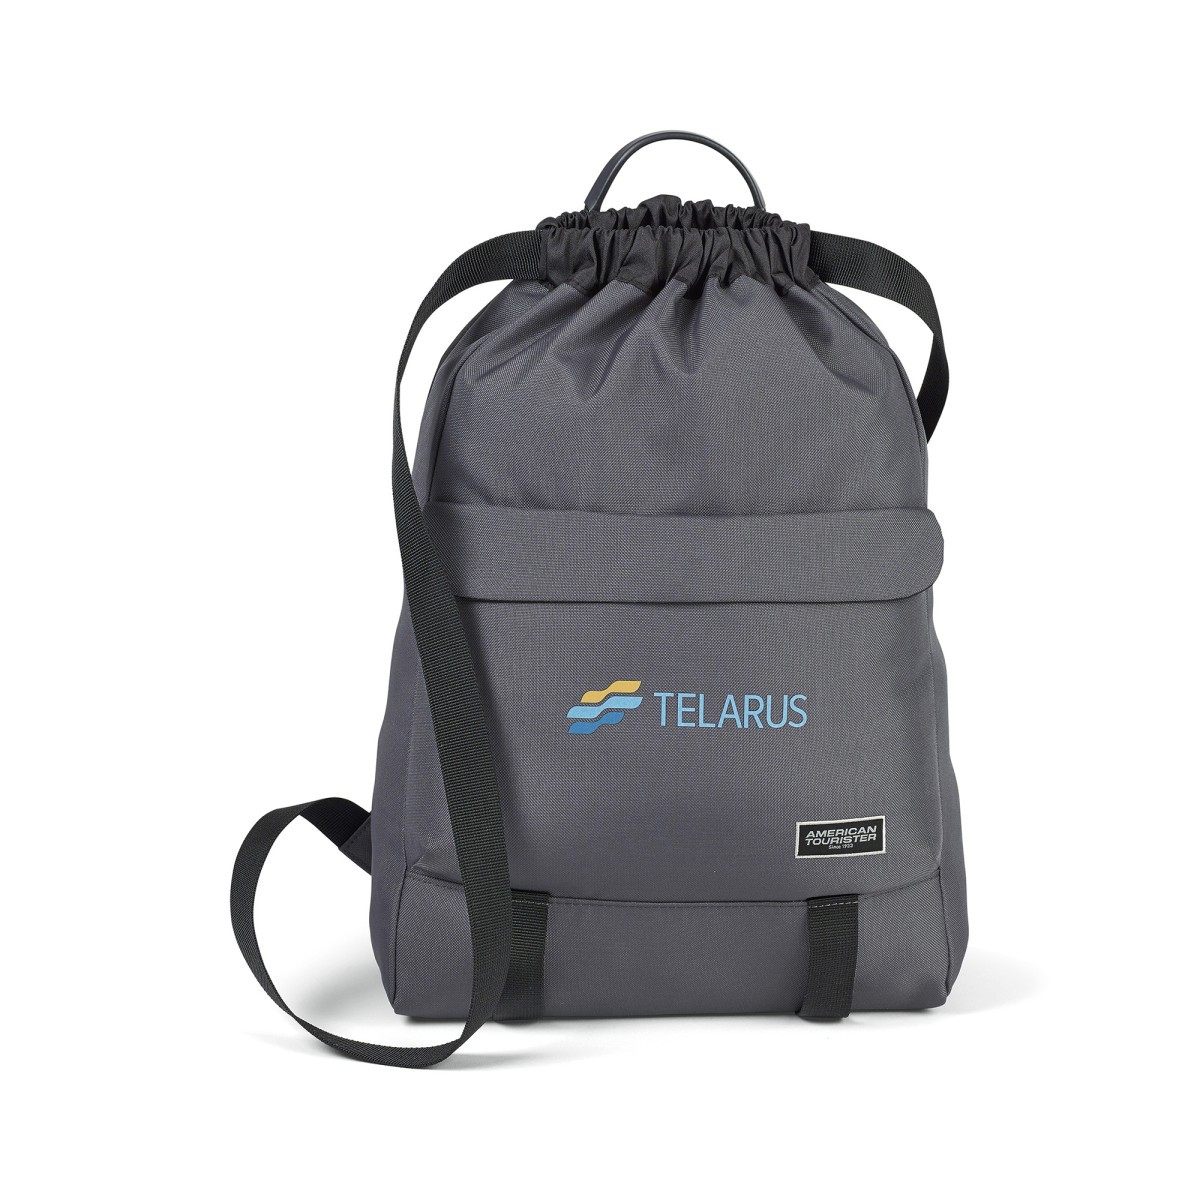 eco-friendly backpack with logo